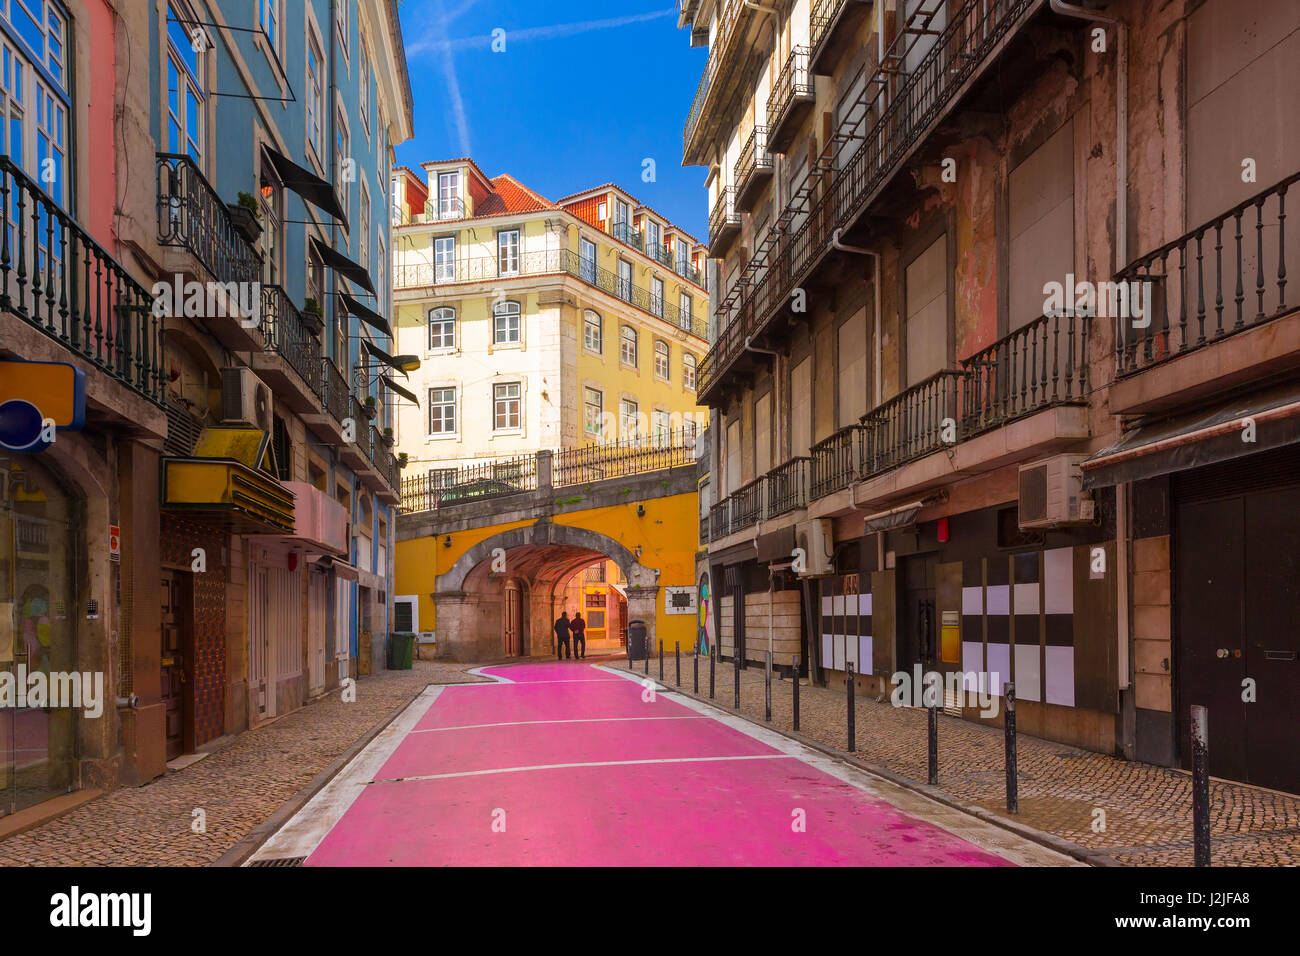 The famous Pink street in Lisbon, Portugal - Stock Image